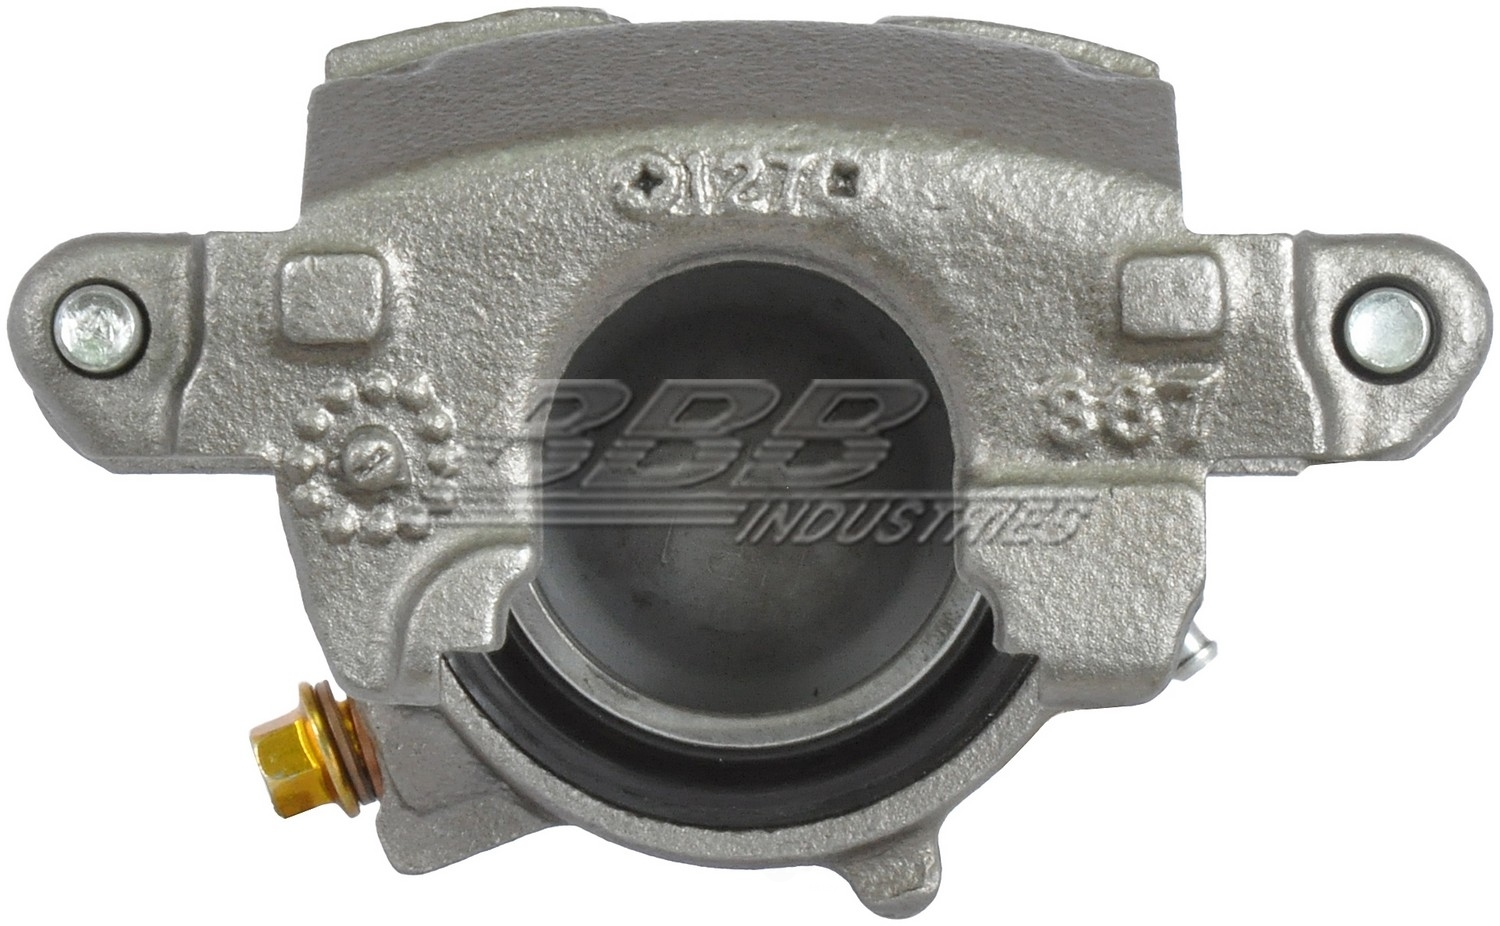 BBB INDUSTRIES - Reman Caliper w/ Installation Hardware - BBA 97-17248A